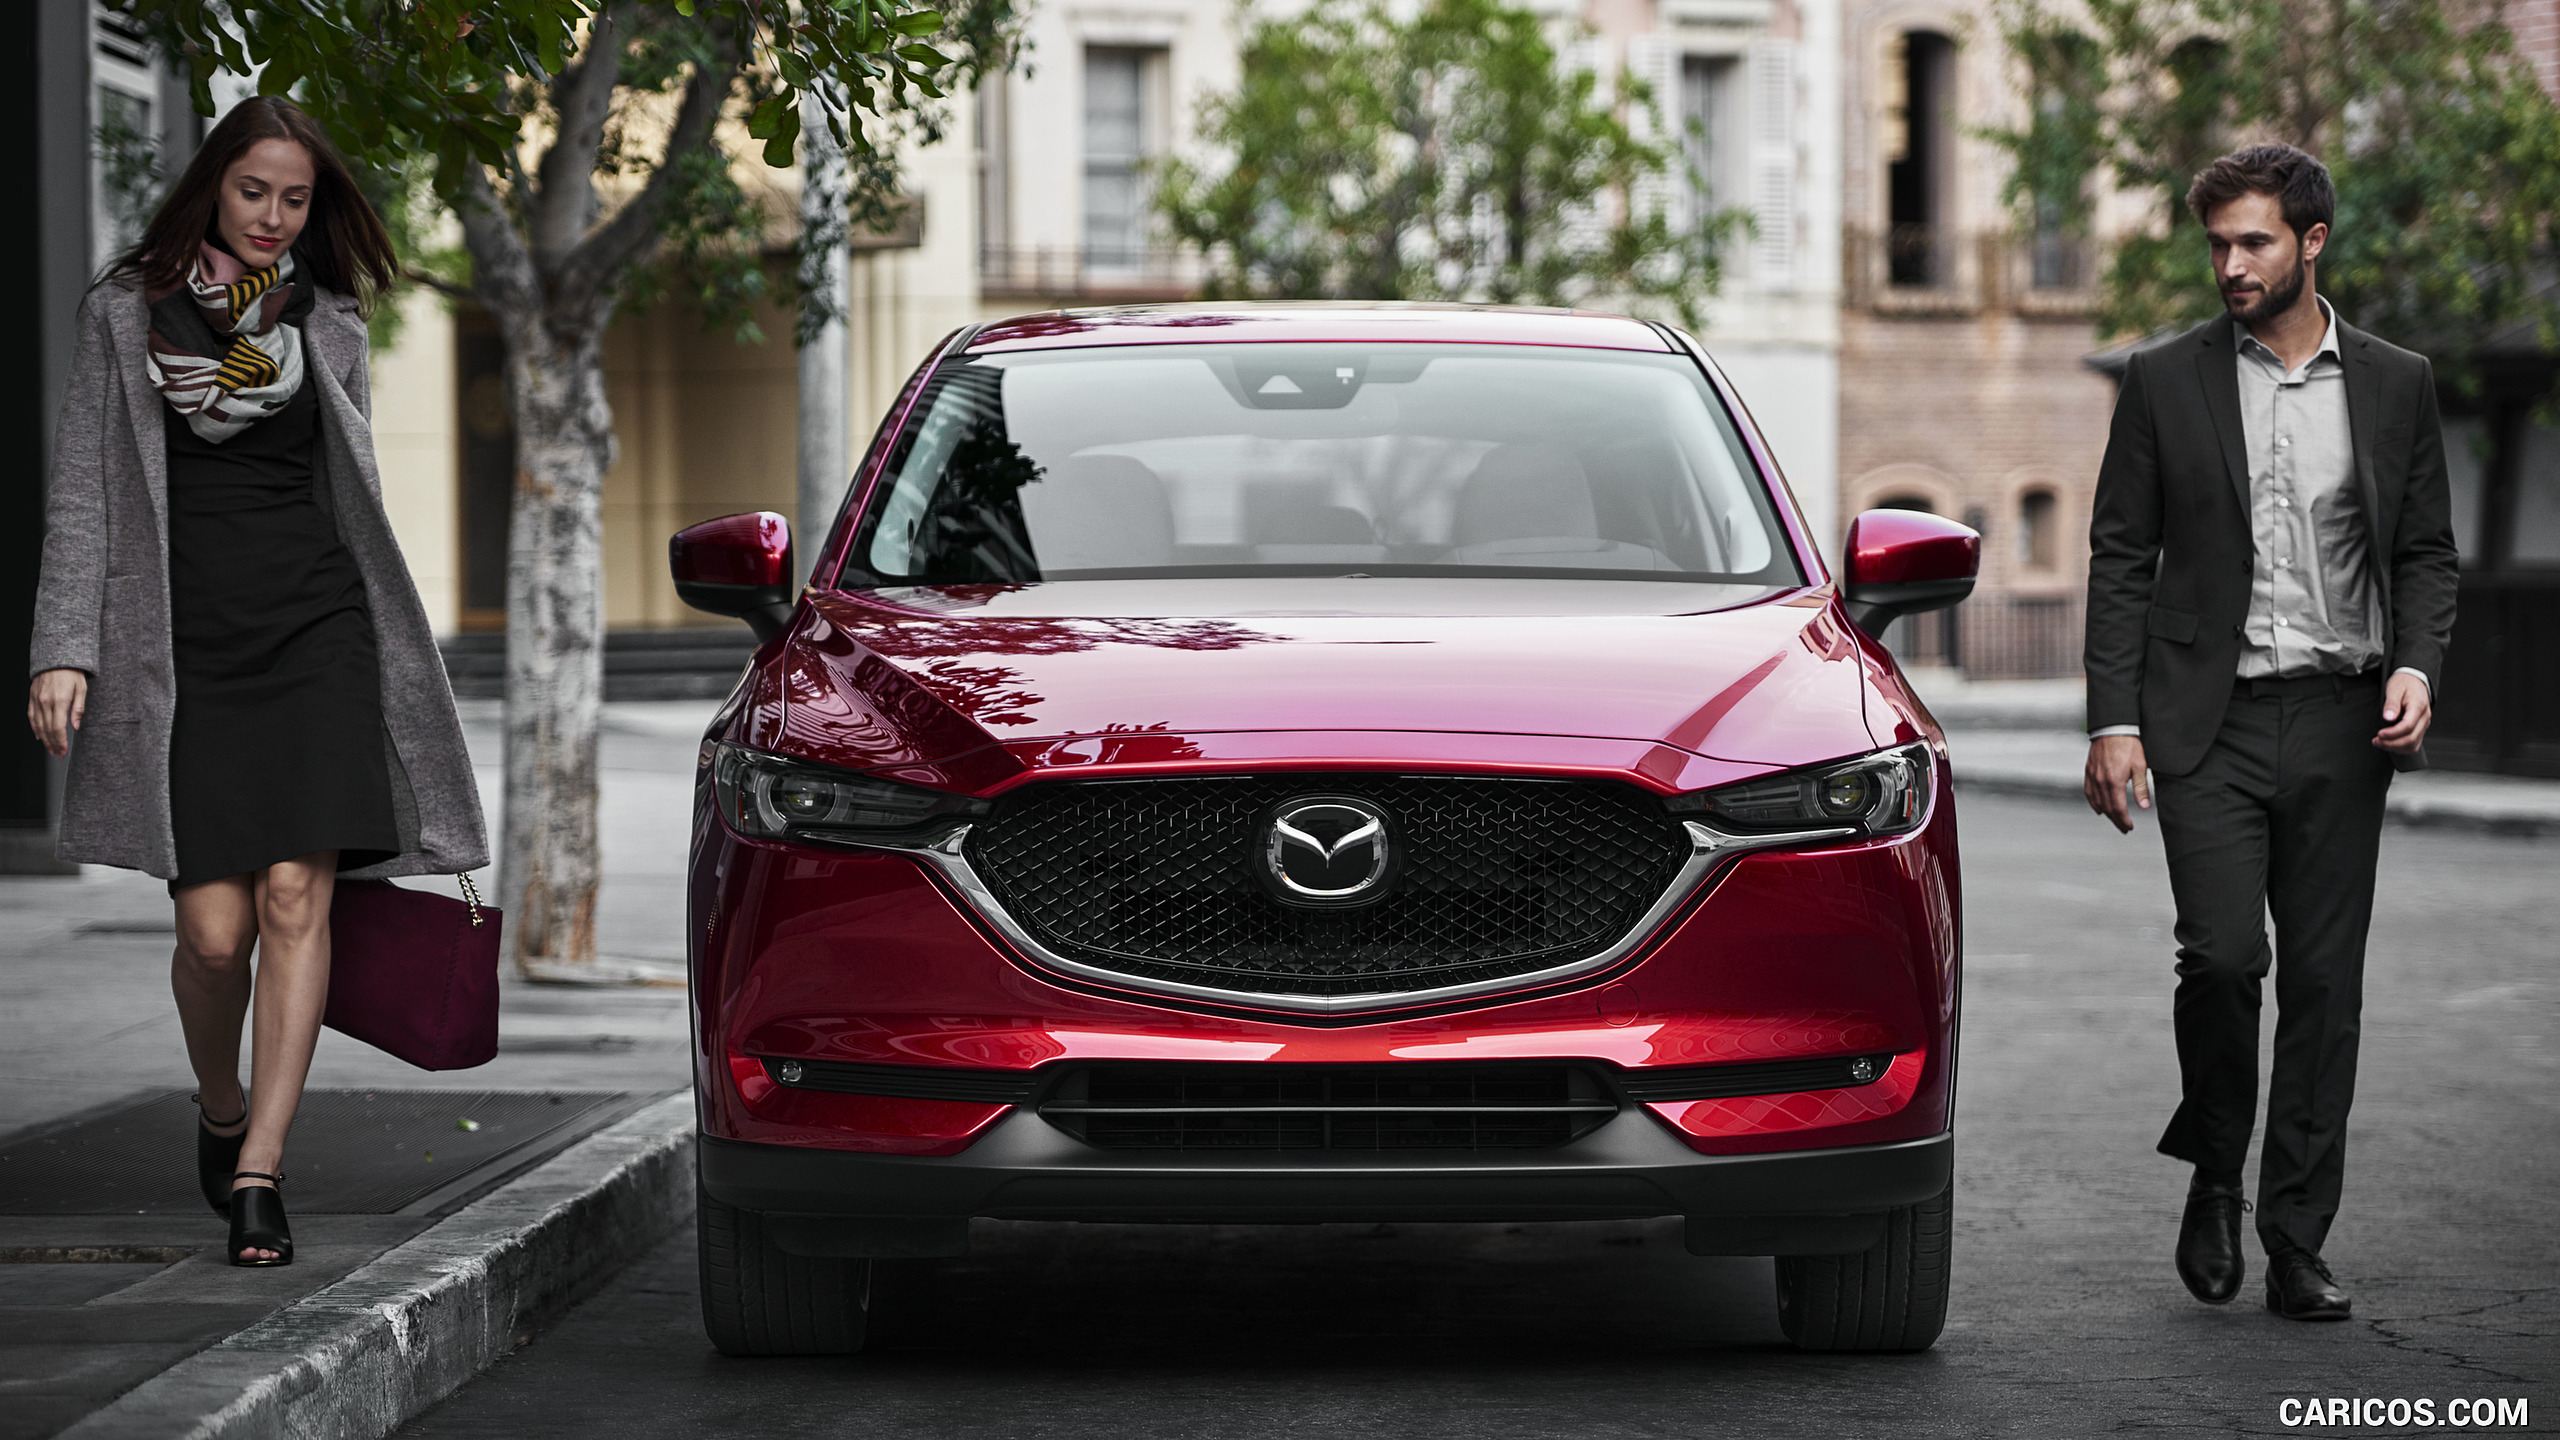 2560x1440 - Mazda CX-5 Wallpapers 2